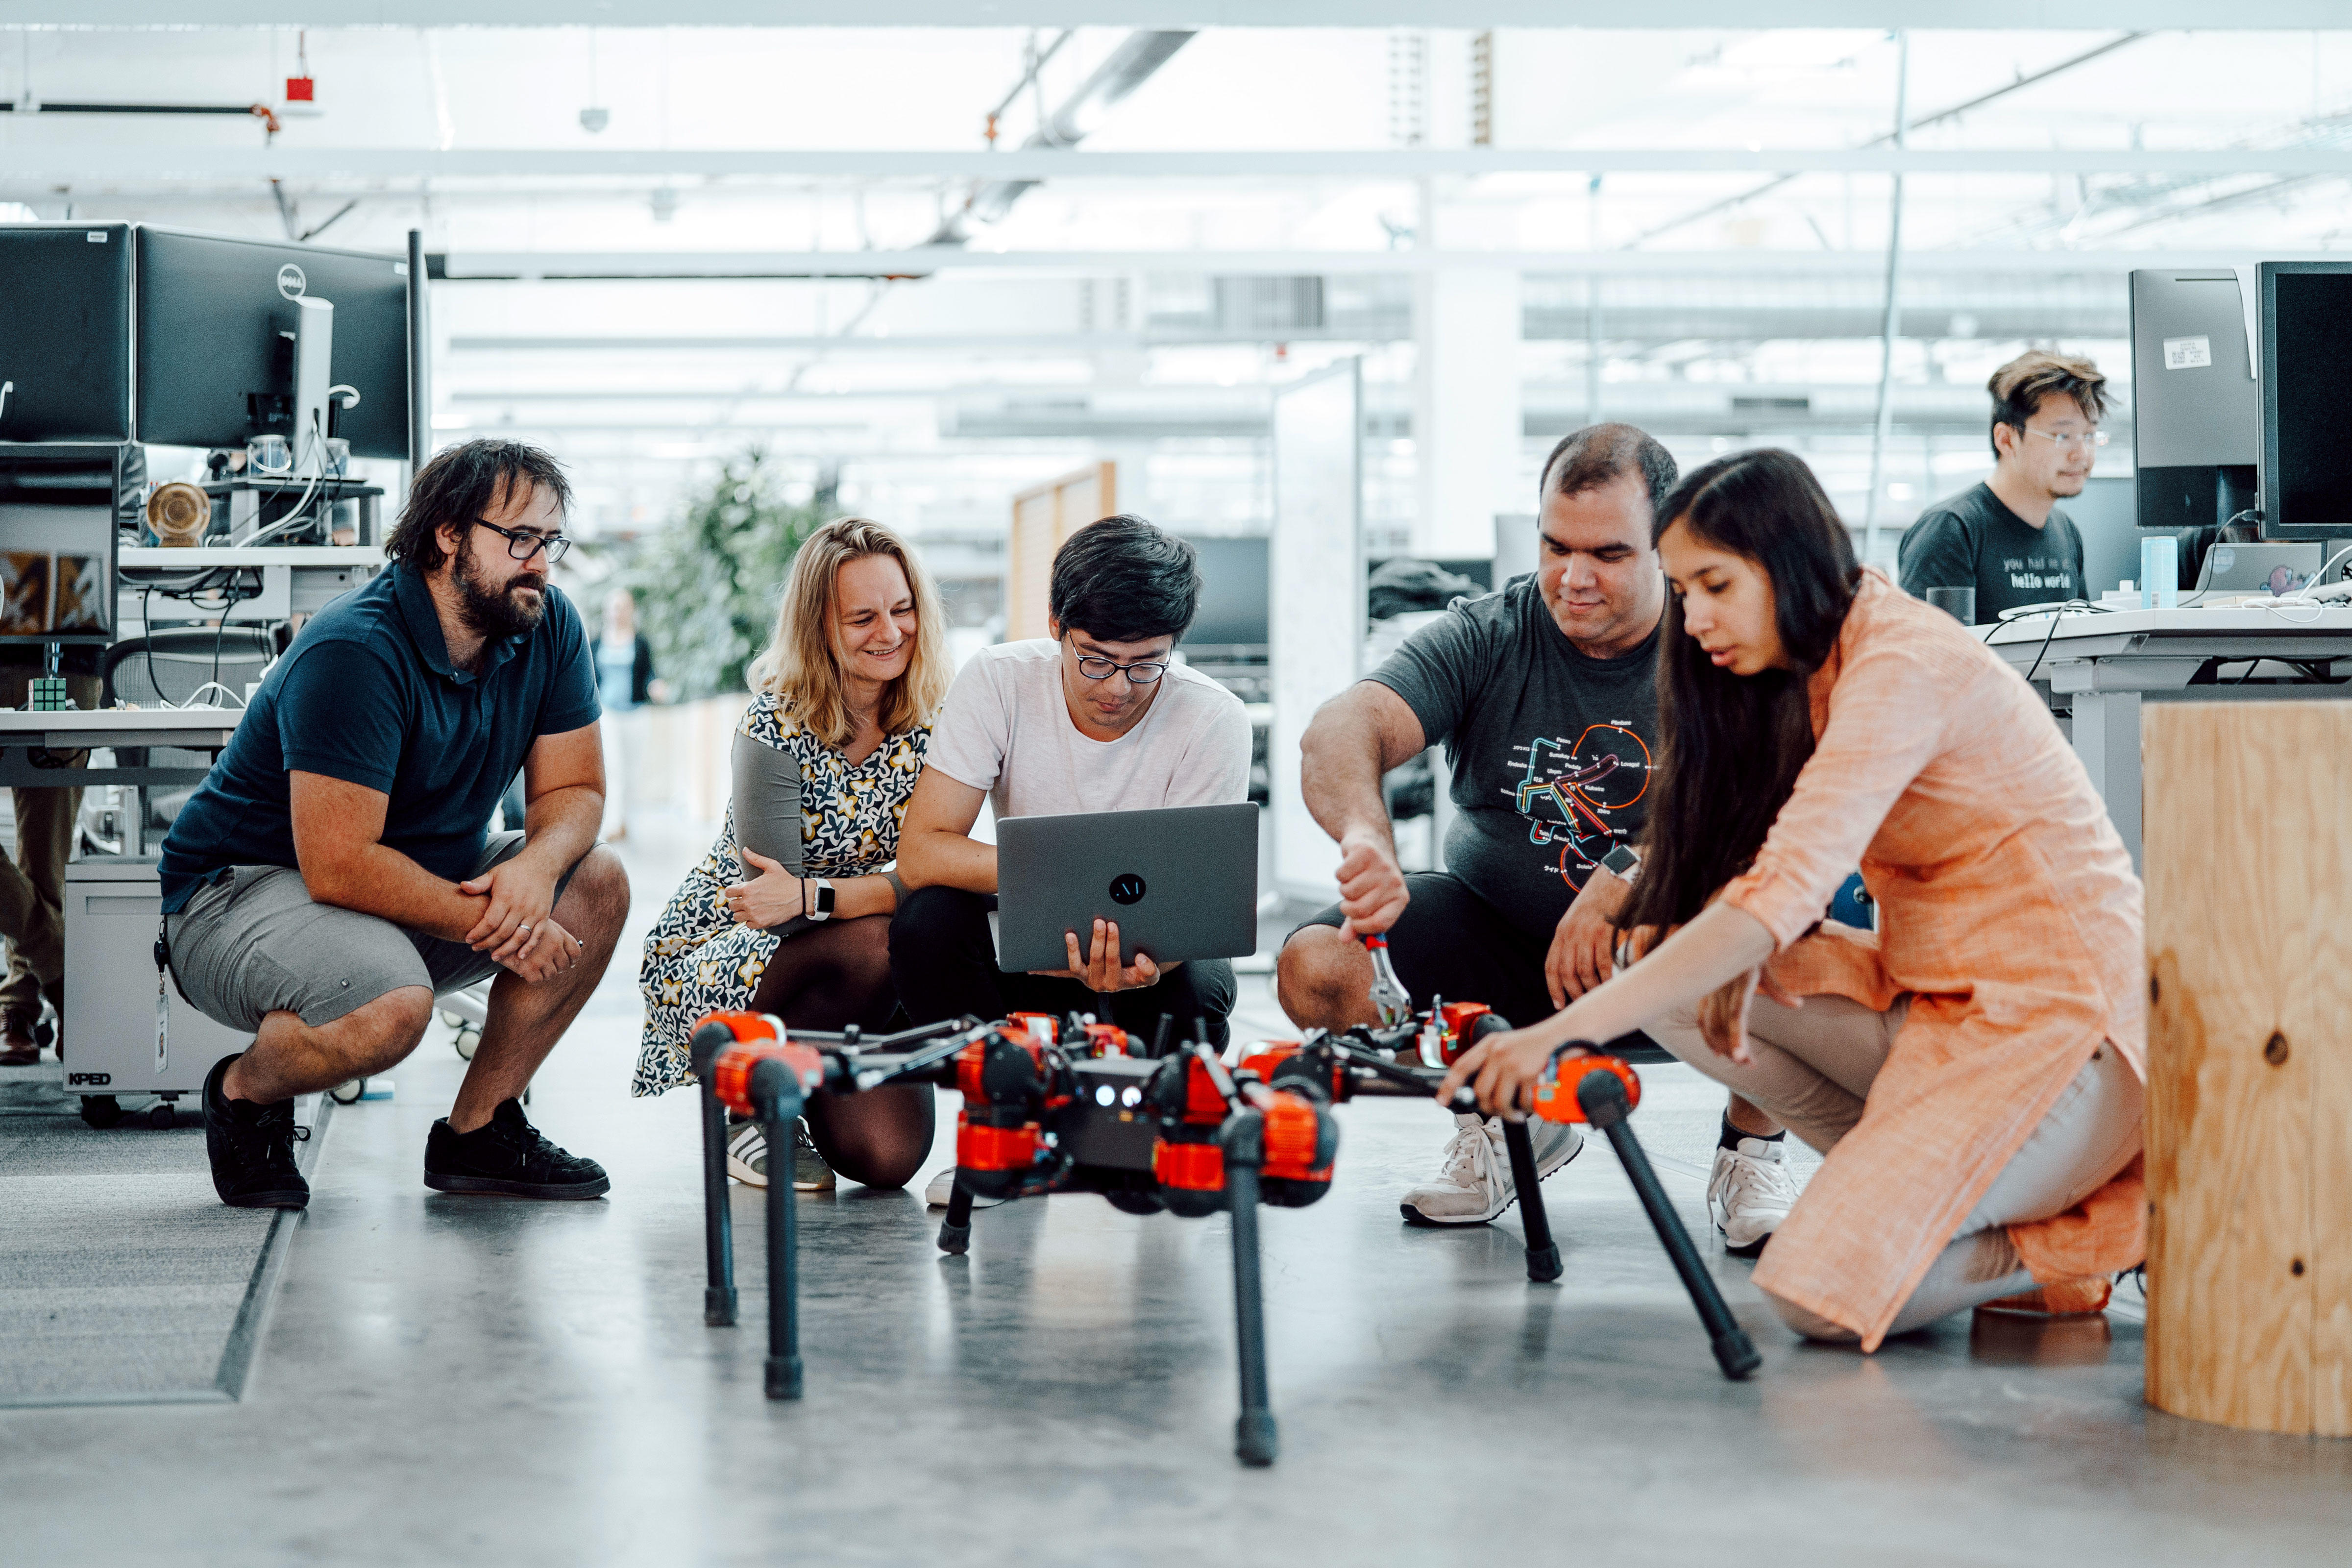 Facebook AI researchers in Menlo Park with Daisy, a hexapod robot learning to walk. From left: Roberto Calandra, research scientist; Franziska Meier, research scientist; Yixin Lin, research engineer; Omry Yadan, software engineer; Akshara Rai, research scientist.